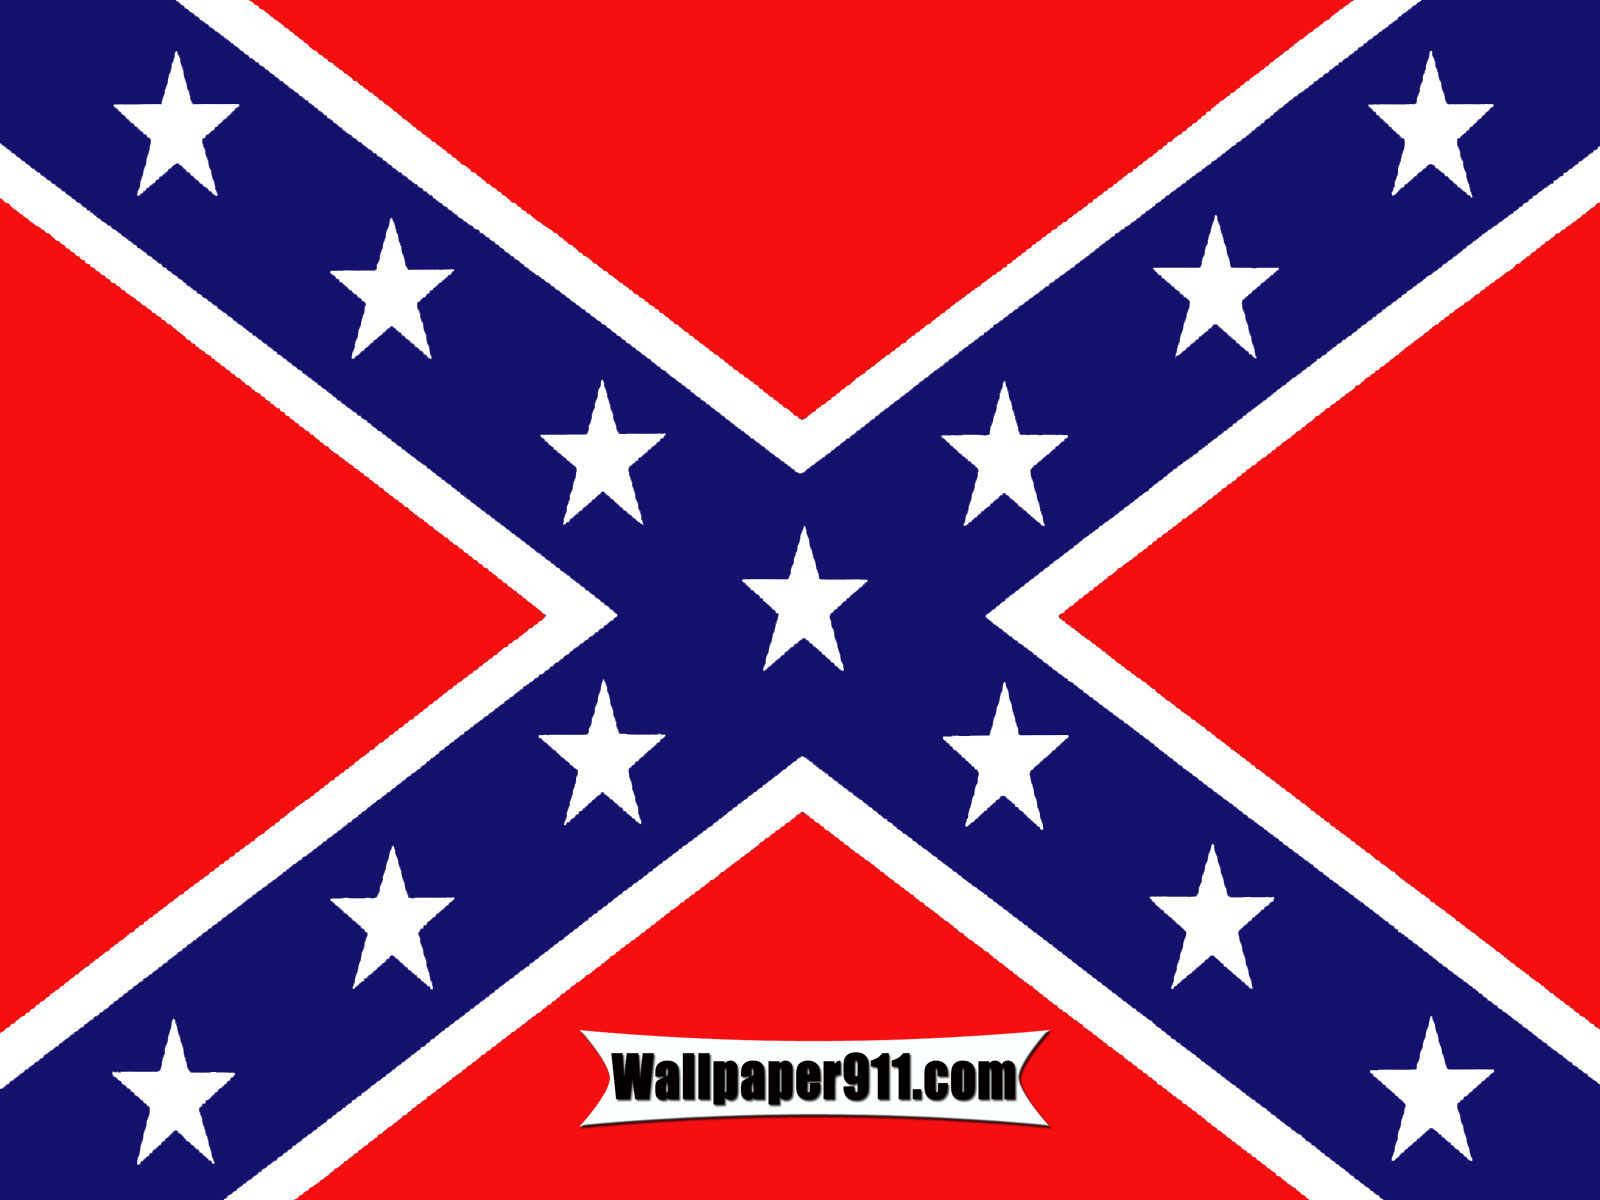 Confederate Flag Wallpaper 1600x1200